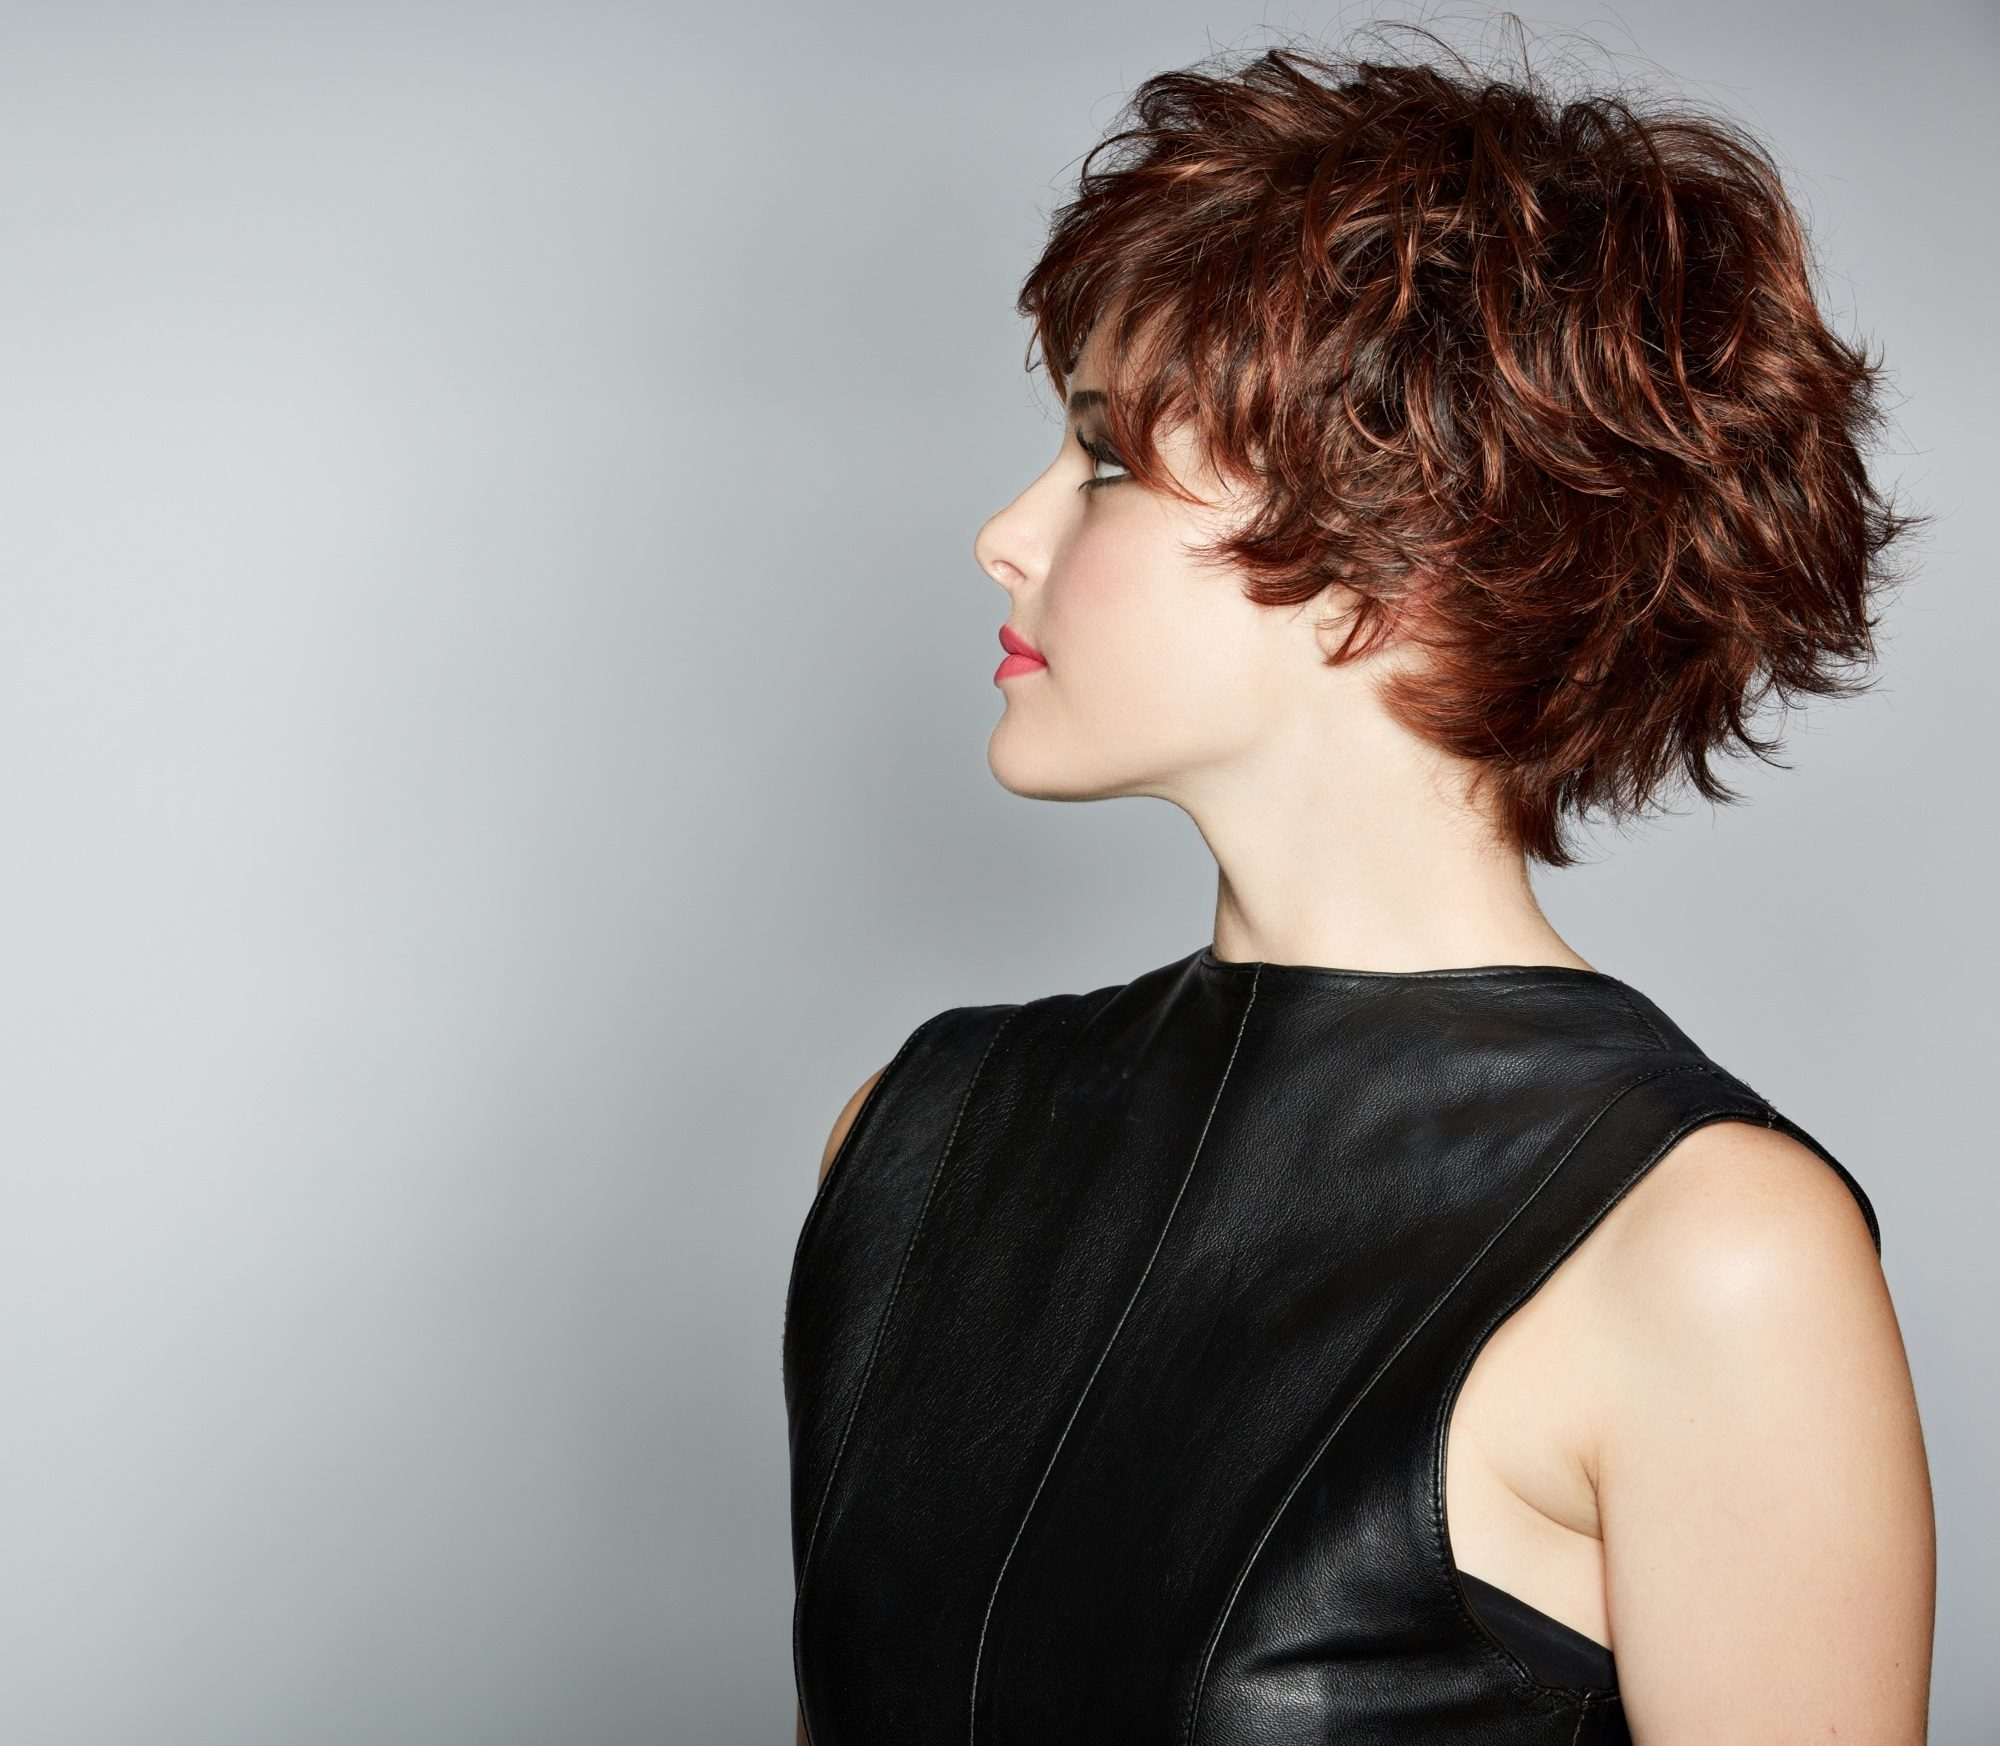 Short hairstyles for thick hair: Textured pixie cut